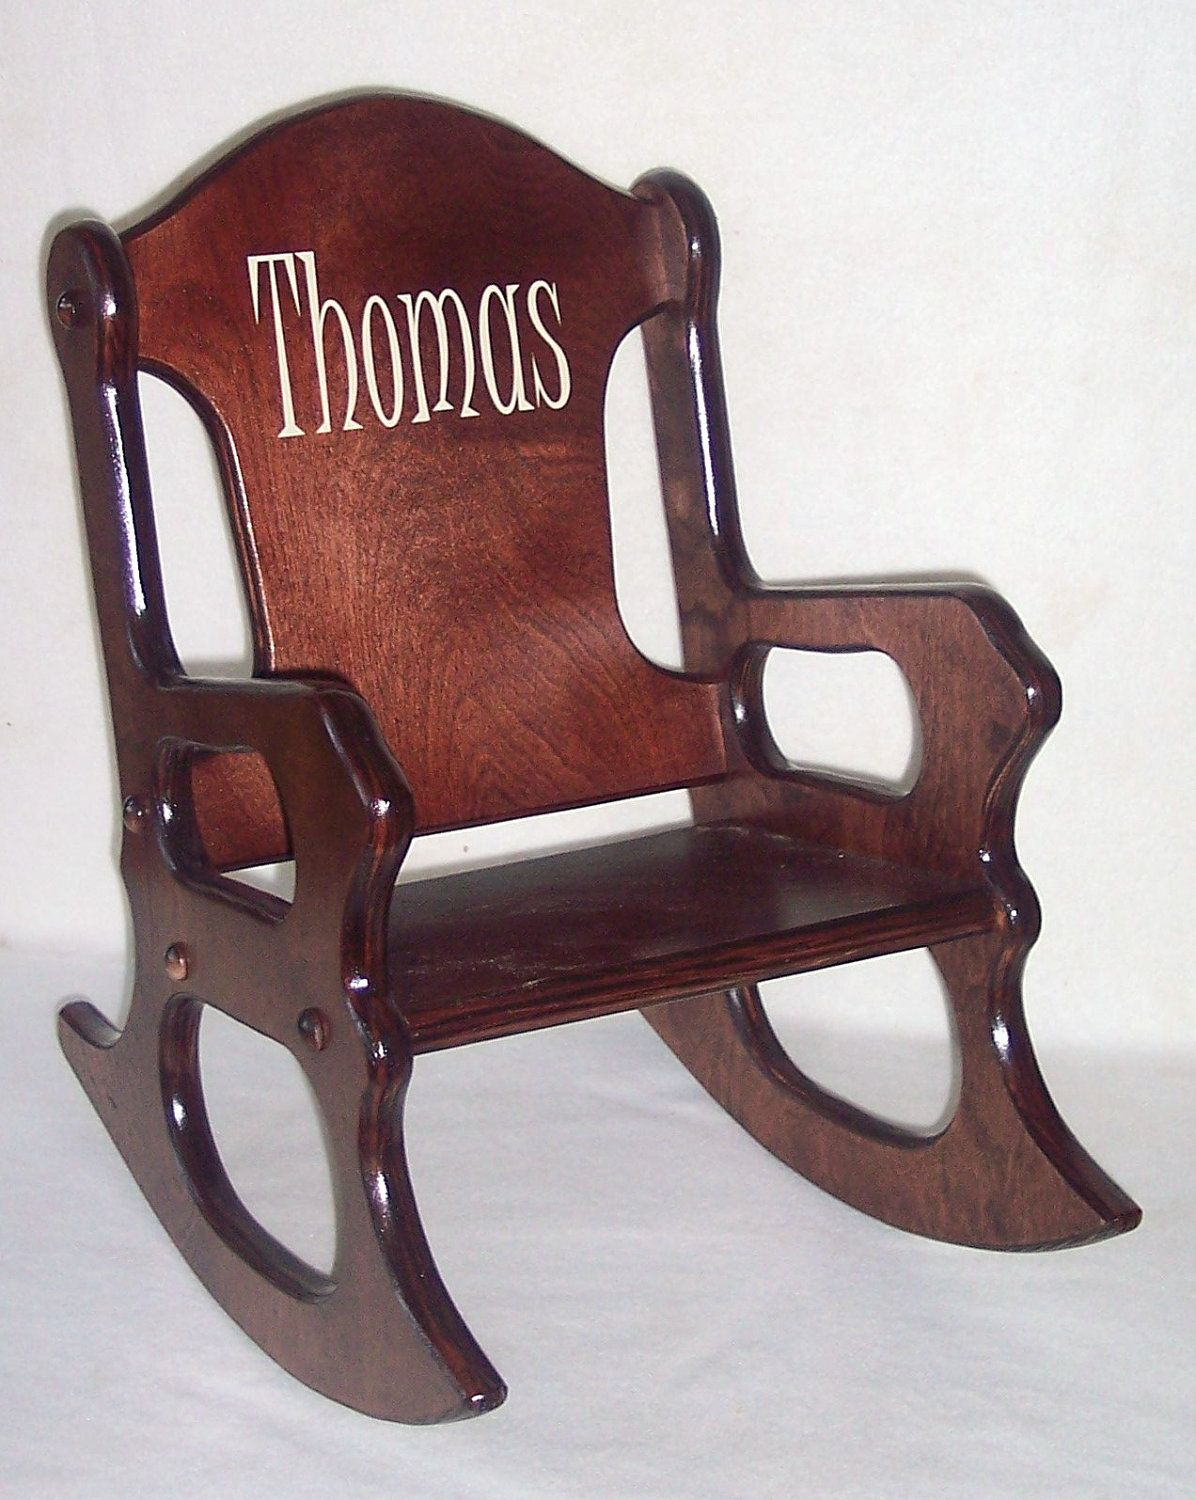 Child Wooden Rocking Chair Wooden Kids Rocking Chair Personalized Cherry Finish 59 95